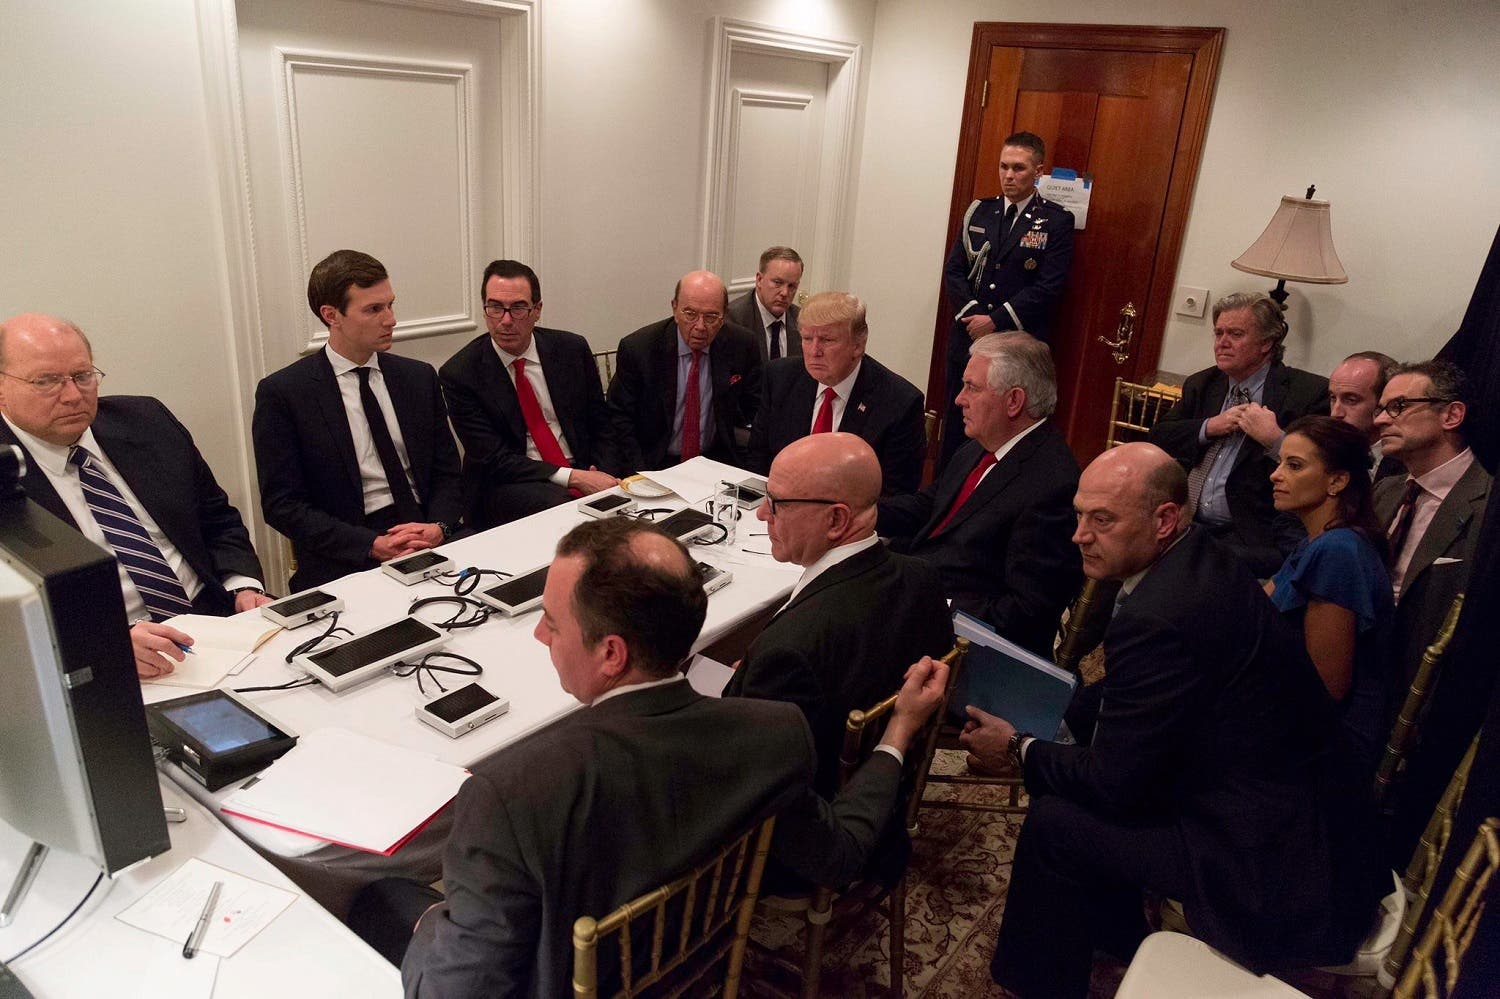 US President Donald Trump is shown in an official White House handout image meeting with his National Security team and being briefed by Chairman of the Joint Chiefs of Staff General Joseph Dunford via secure video teleconference after a missile strike on Syria (Photo: The White House/Handout via Reuters)